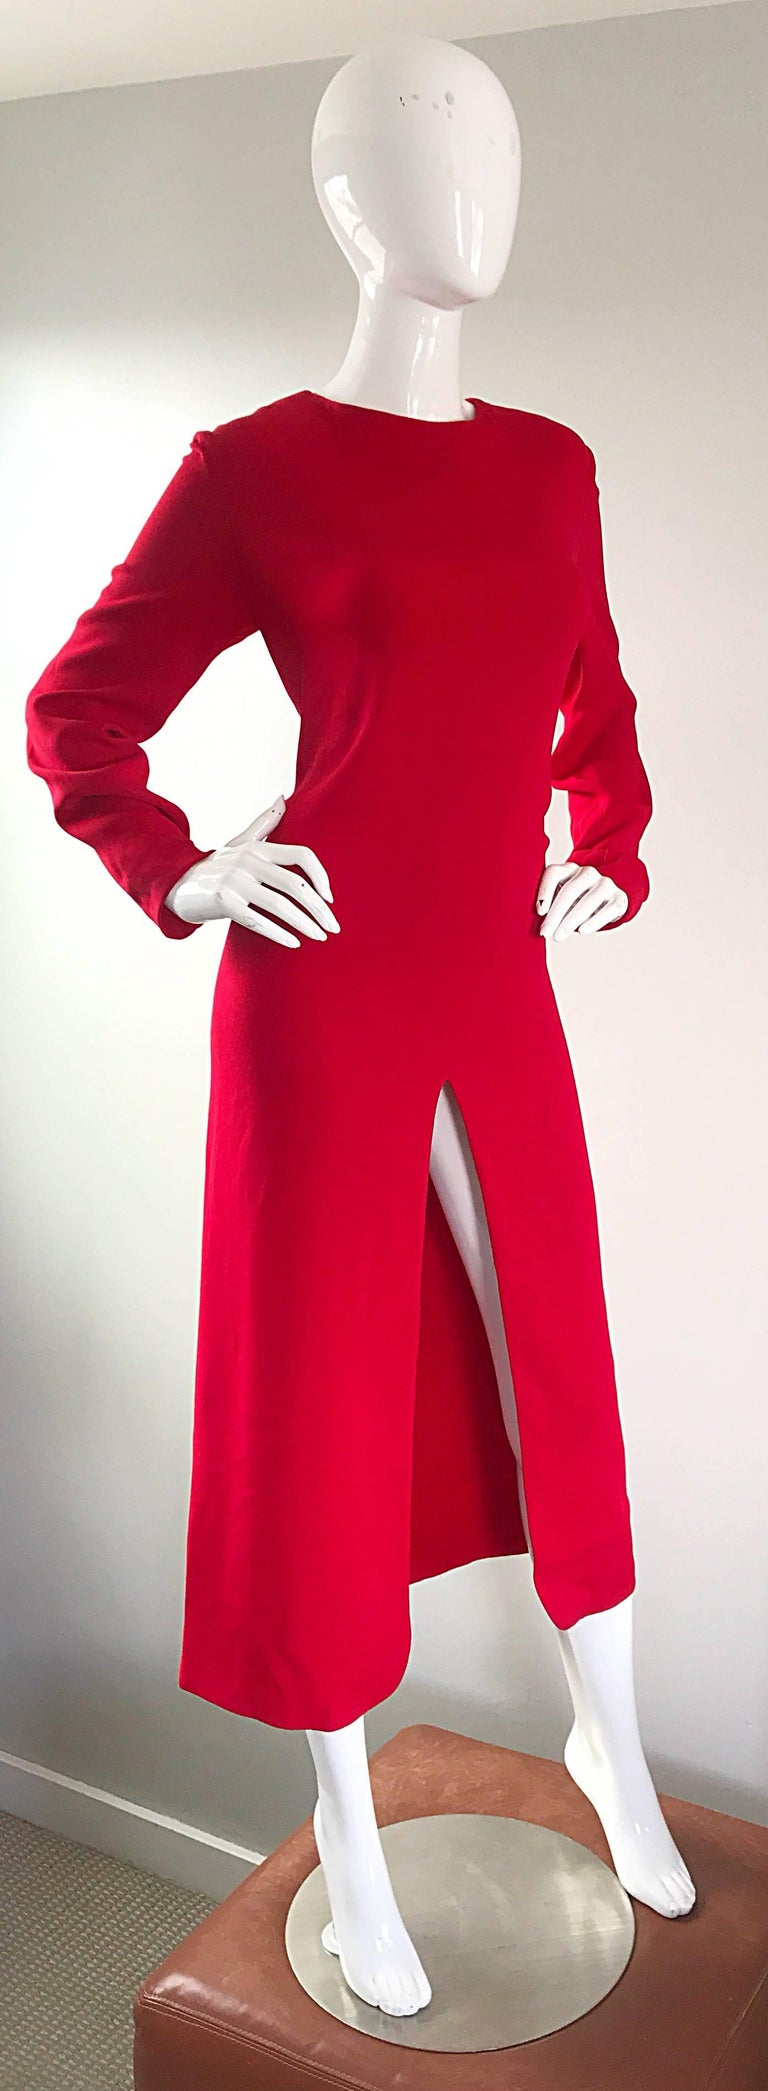 1990s Badgley Mischka Size 10 / 12 Lipstick Red Long Sleeve 90s Evening Dress 7